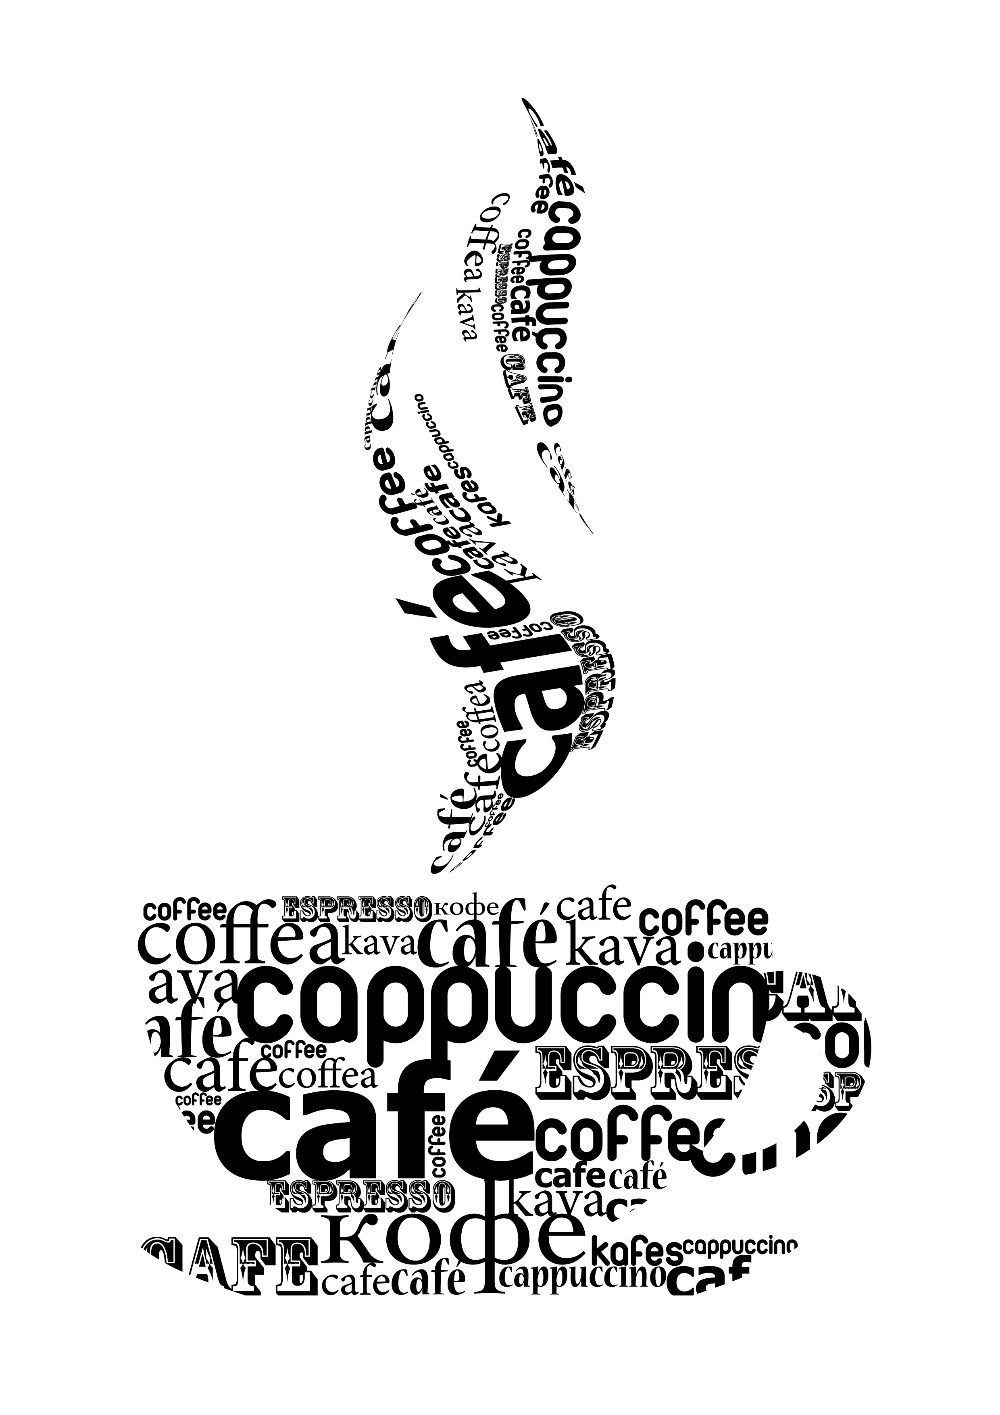 DIY Coffee Cups Sign Decal Vinyl Sticker Window Shops Pubs Hotels - How to make car window decals at home